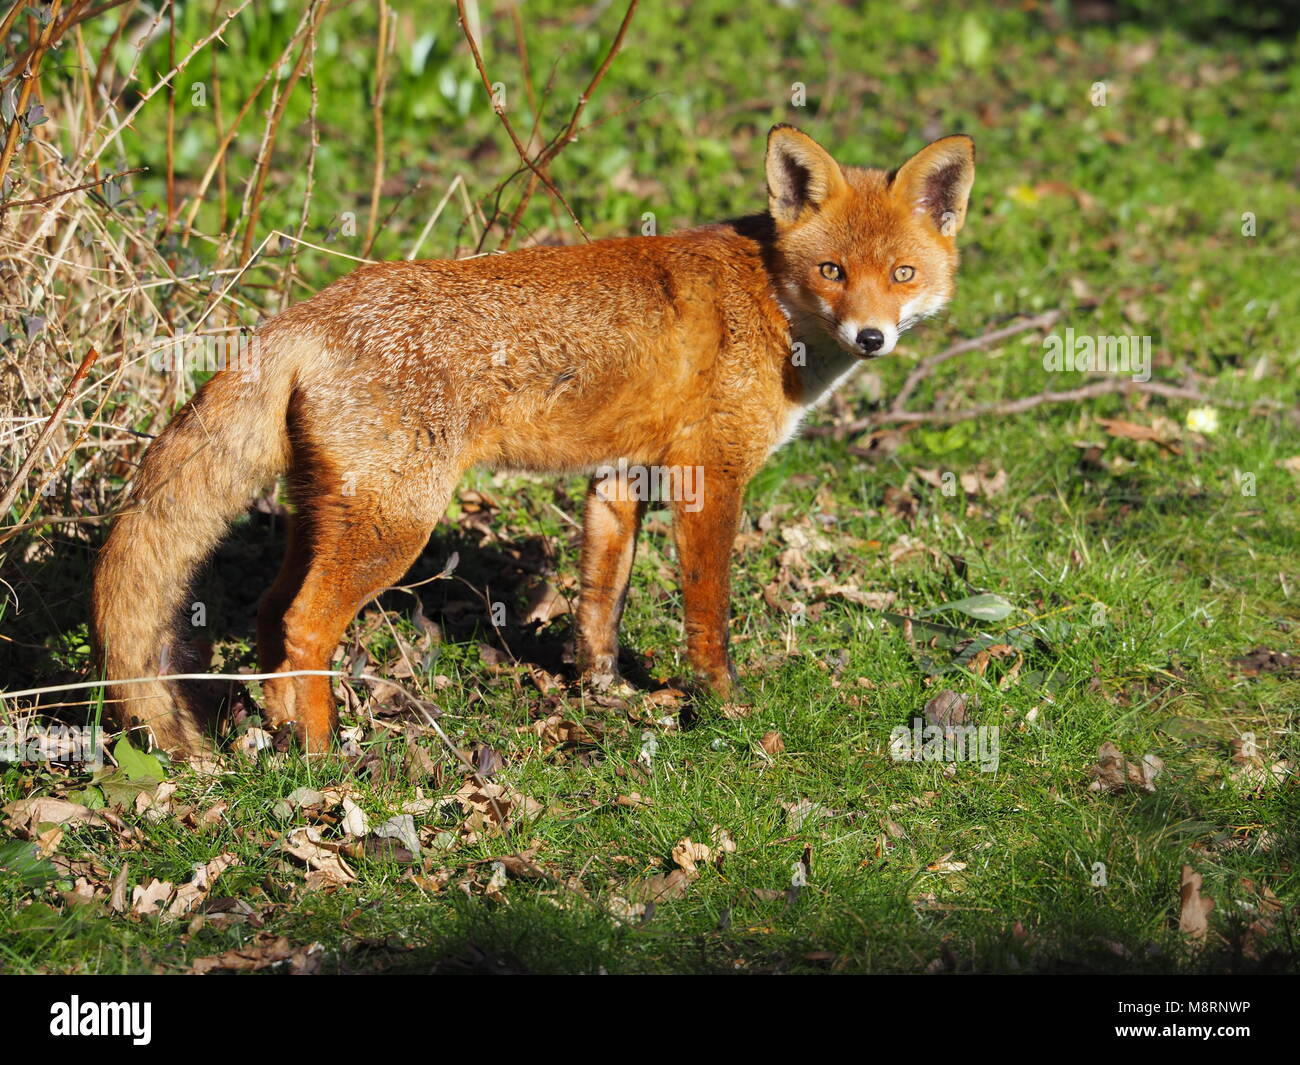 An alert wild British Fox waking up from an afternoon snooze in spring sunshine in a Hertfordshire garden, UK. - Stock Image